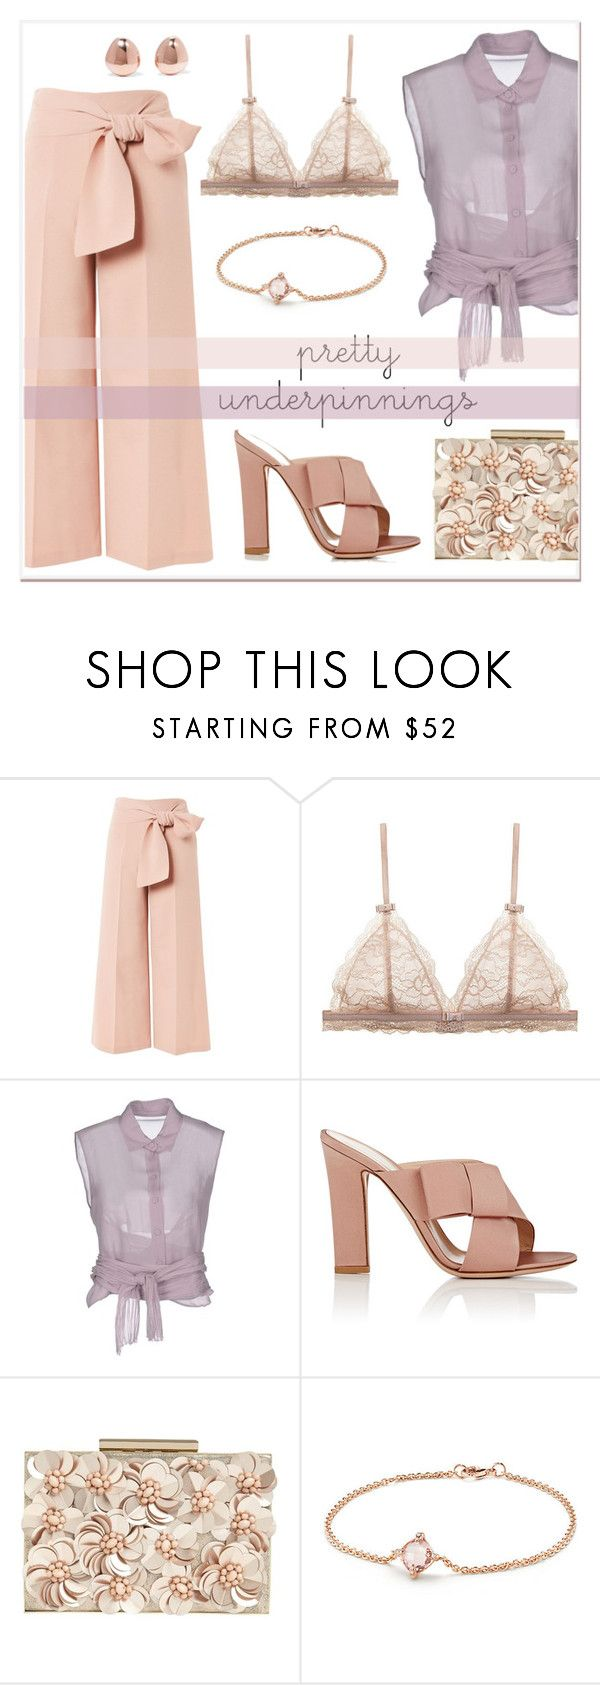 """Pretty Underpinnings"" by elli-argyropoulou ❤ liked on Polyvore featuring Topshop, Alberta Ferretti, Gianvito Rossi, Phase Eight, David Yurman and Monica Vinader"